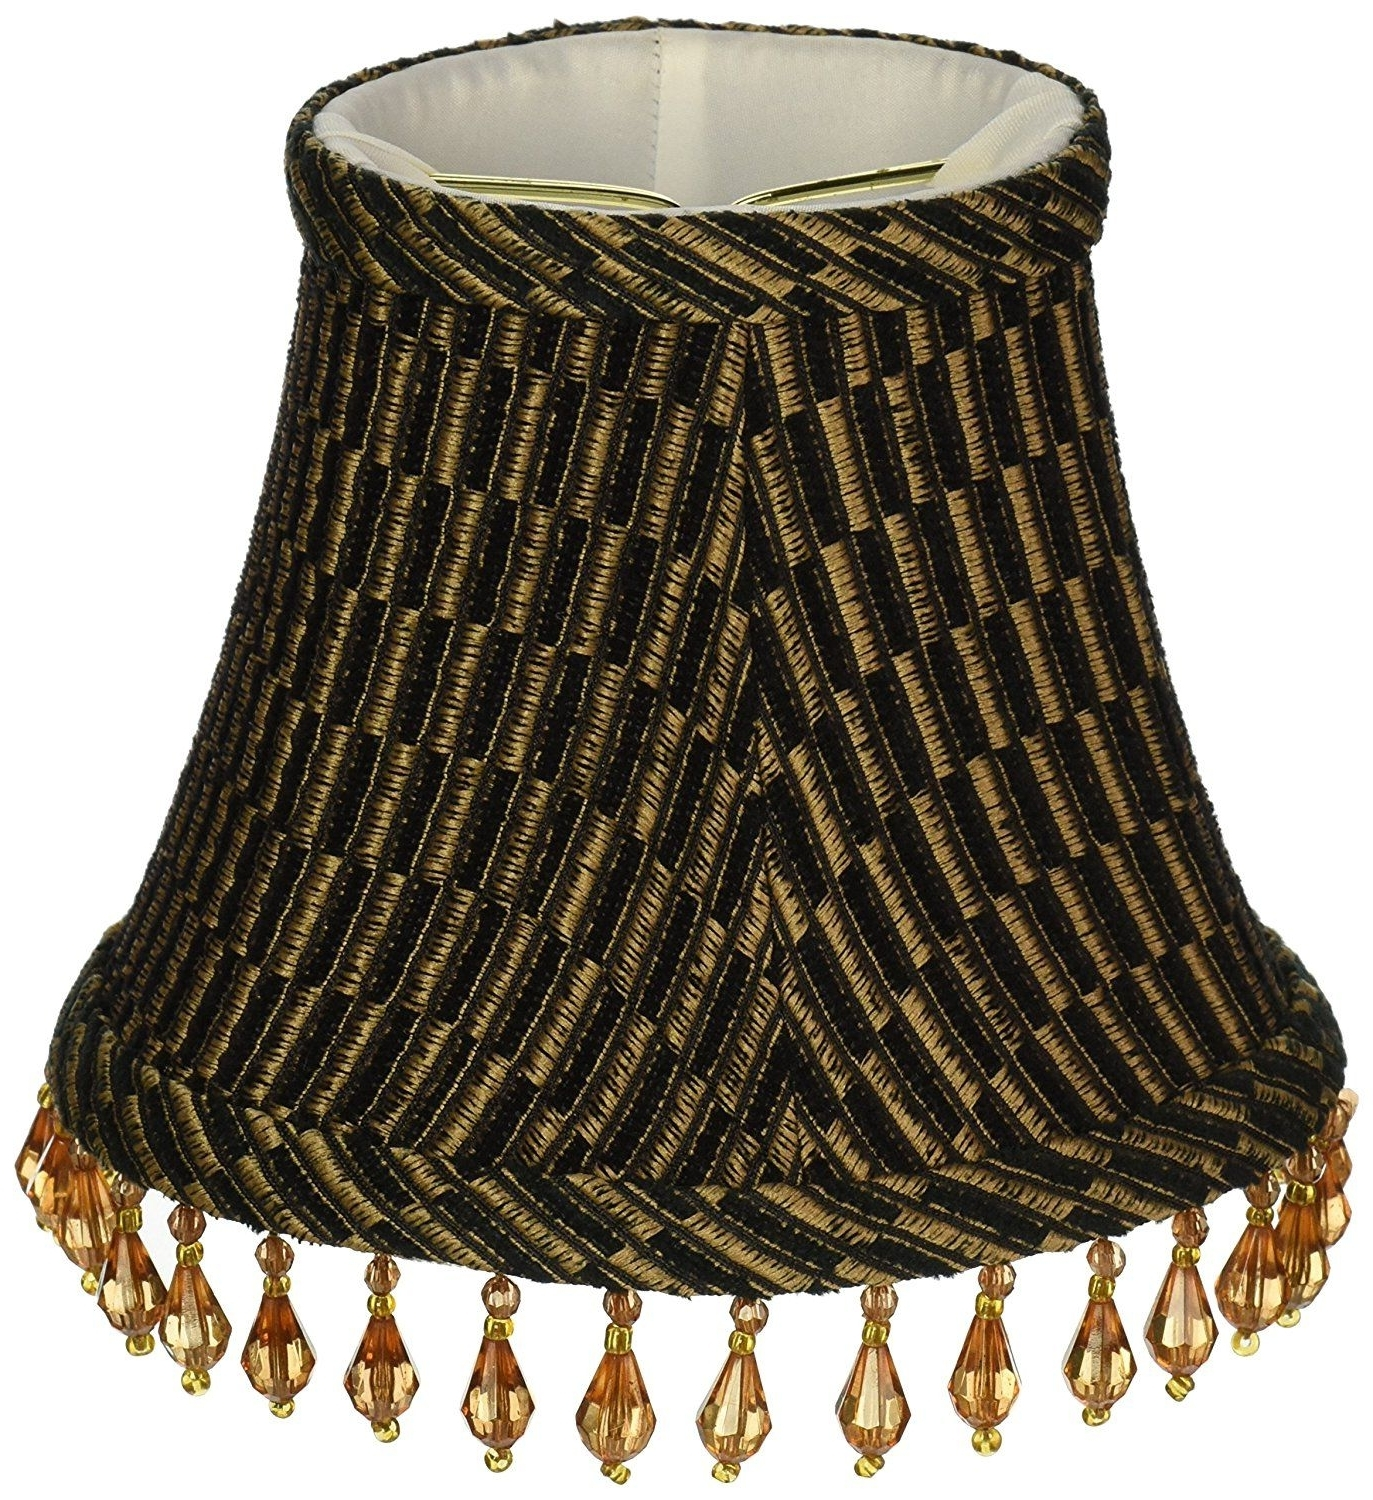 Lamp: Chandelier Lamp Shades Upgradelights Set Of 6 Barrel Shades 5 For Famous Clip On Chandelier Lamp Shades (View 11 of 20)